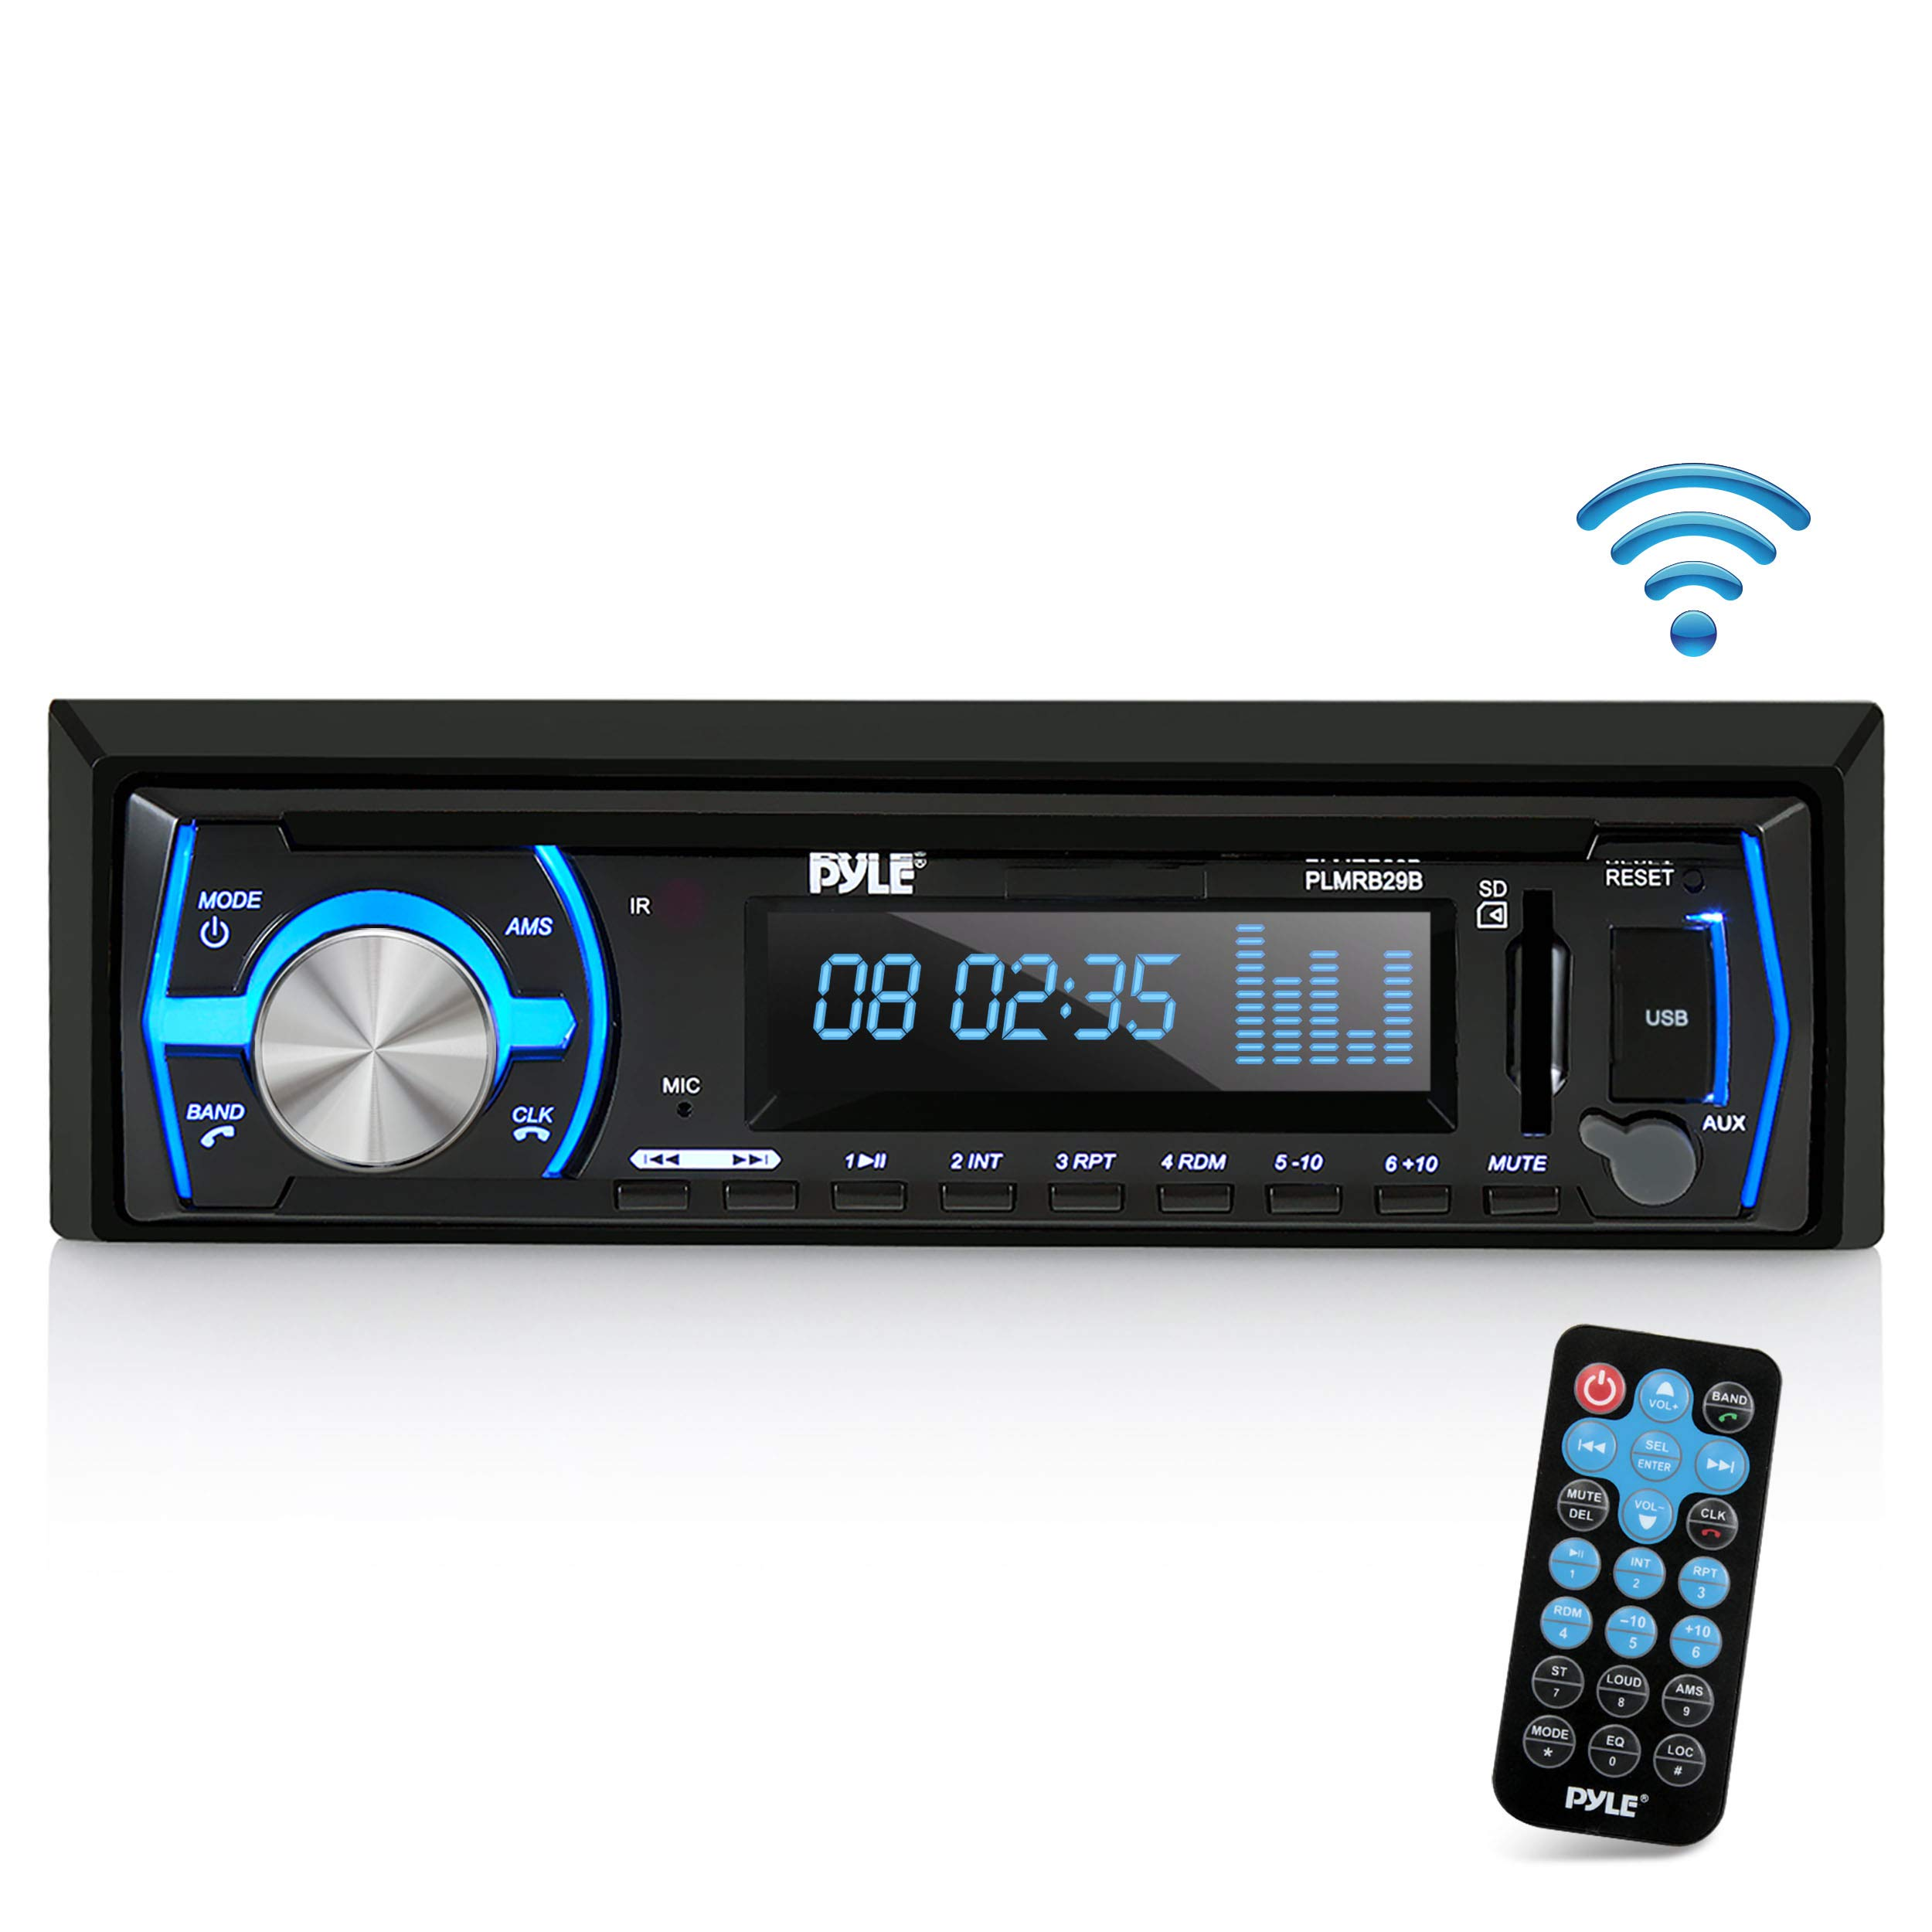 Pyle Marine Bluetooth Stereo Radio - 12v Single DIN Style Boat in Dash Radio Receiver System with Built-in Mic, Digital LCD, RCA, MP3, USB, SD, AM FM Radio - Remote Control - PLMRB29B (Black) by Pyle